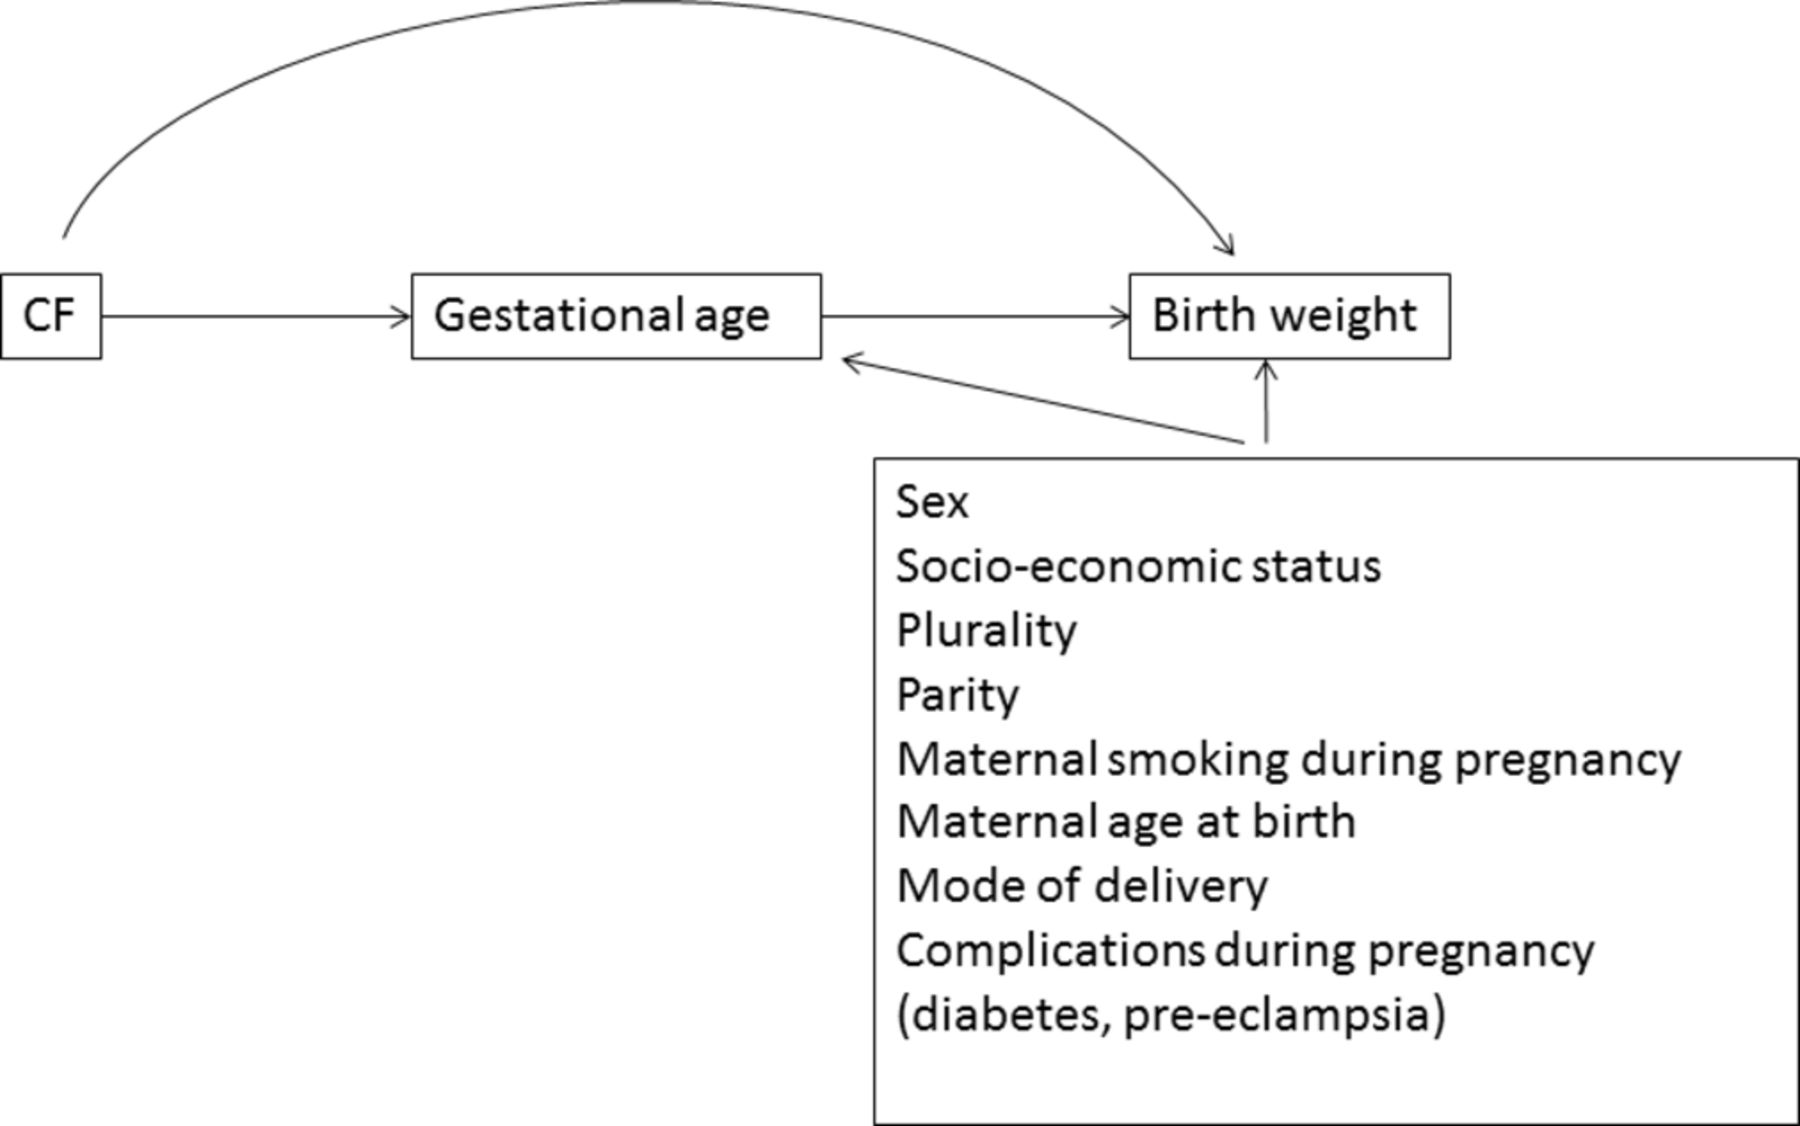 Impact Of Cystic Fibrosis On Birthweight A Population Based Study